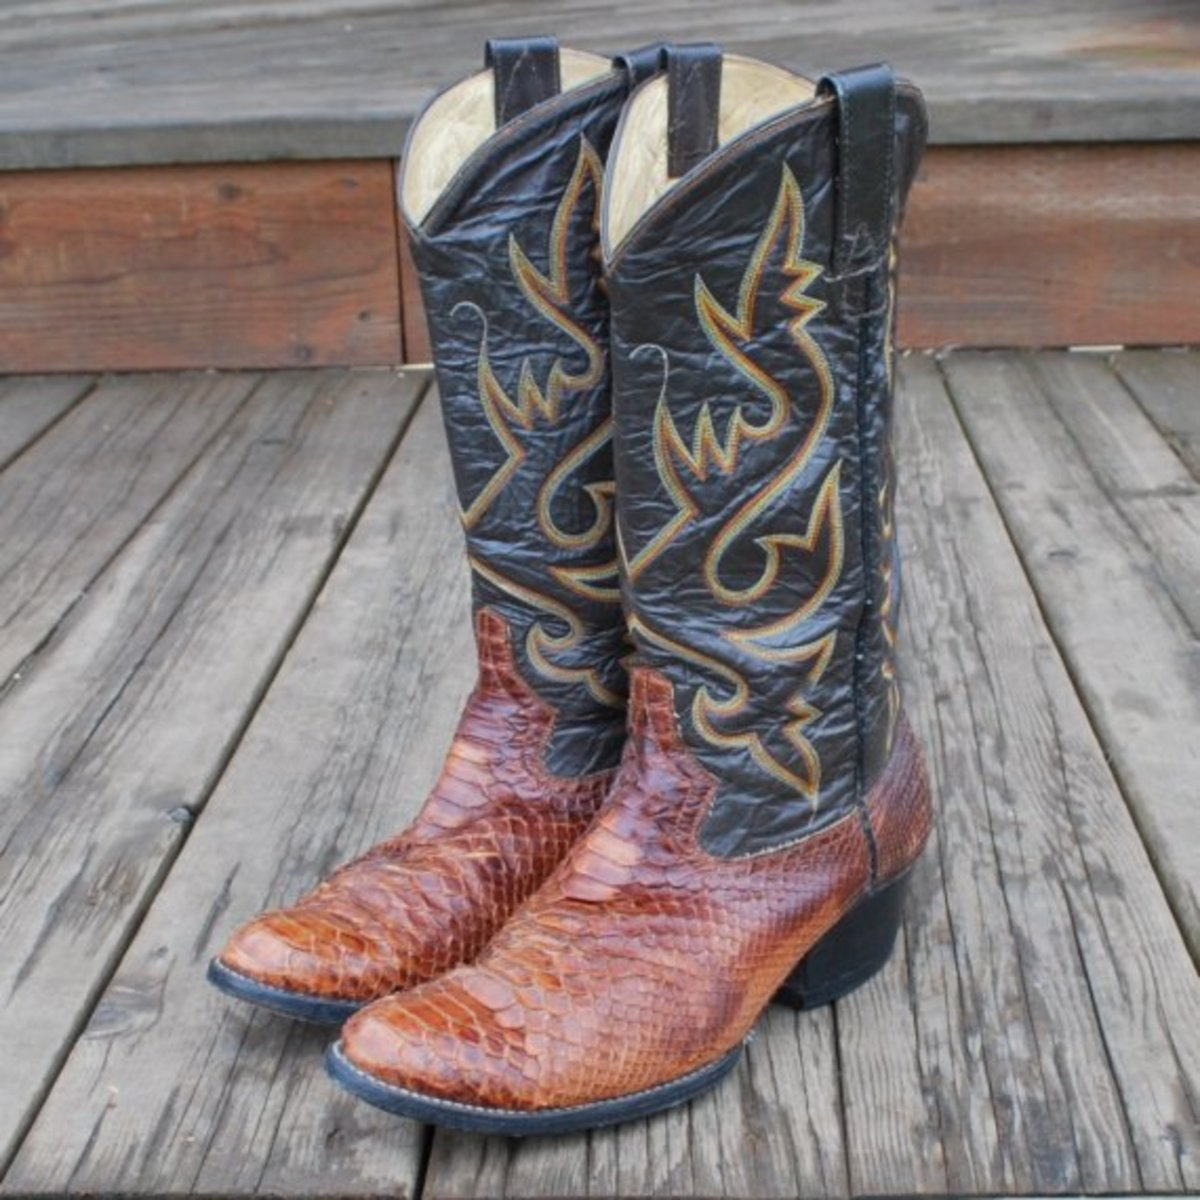 Vintage Men's Reptile Cowboy Boots on etsy.com.